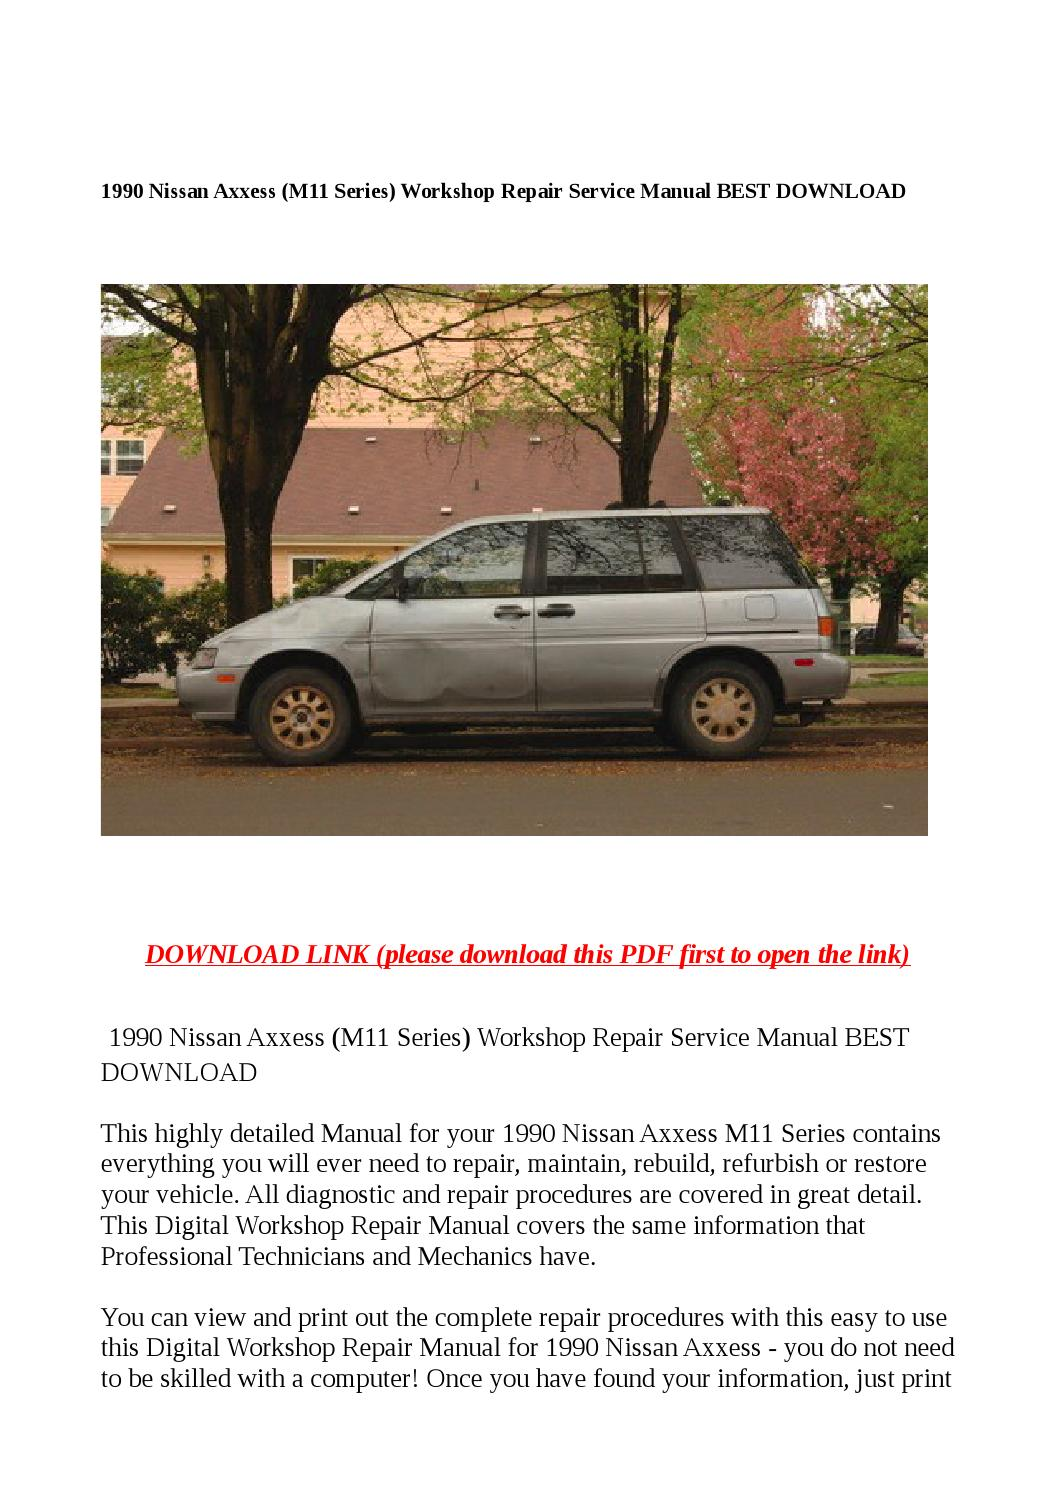 1990 nissan axxess (m11 series) workshop repair service manual best  download by Sally Mool - issuu